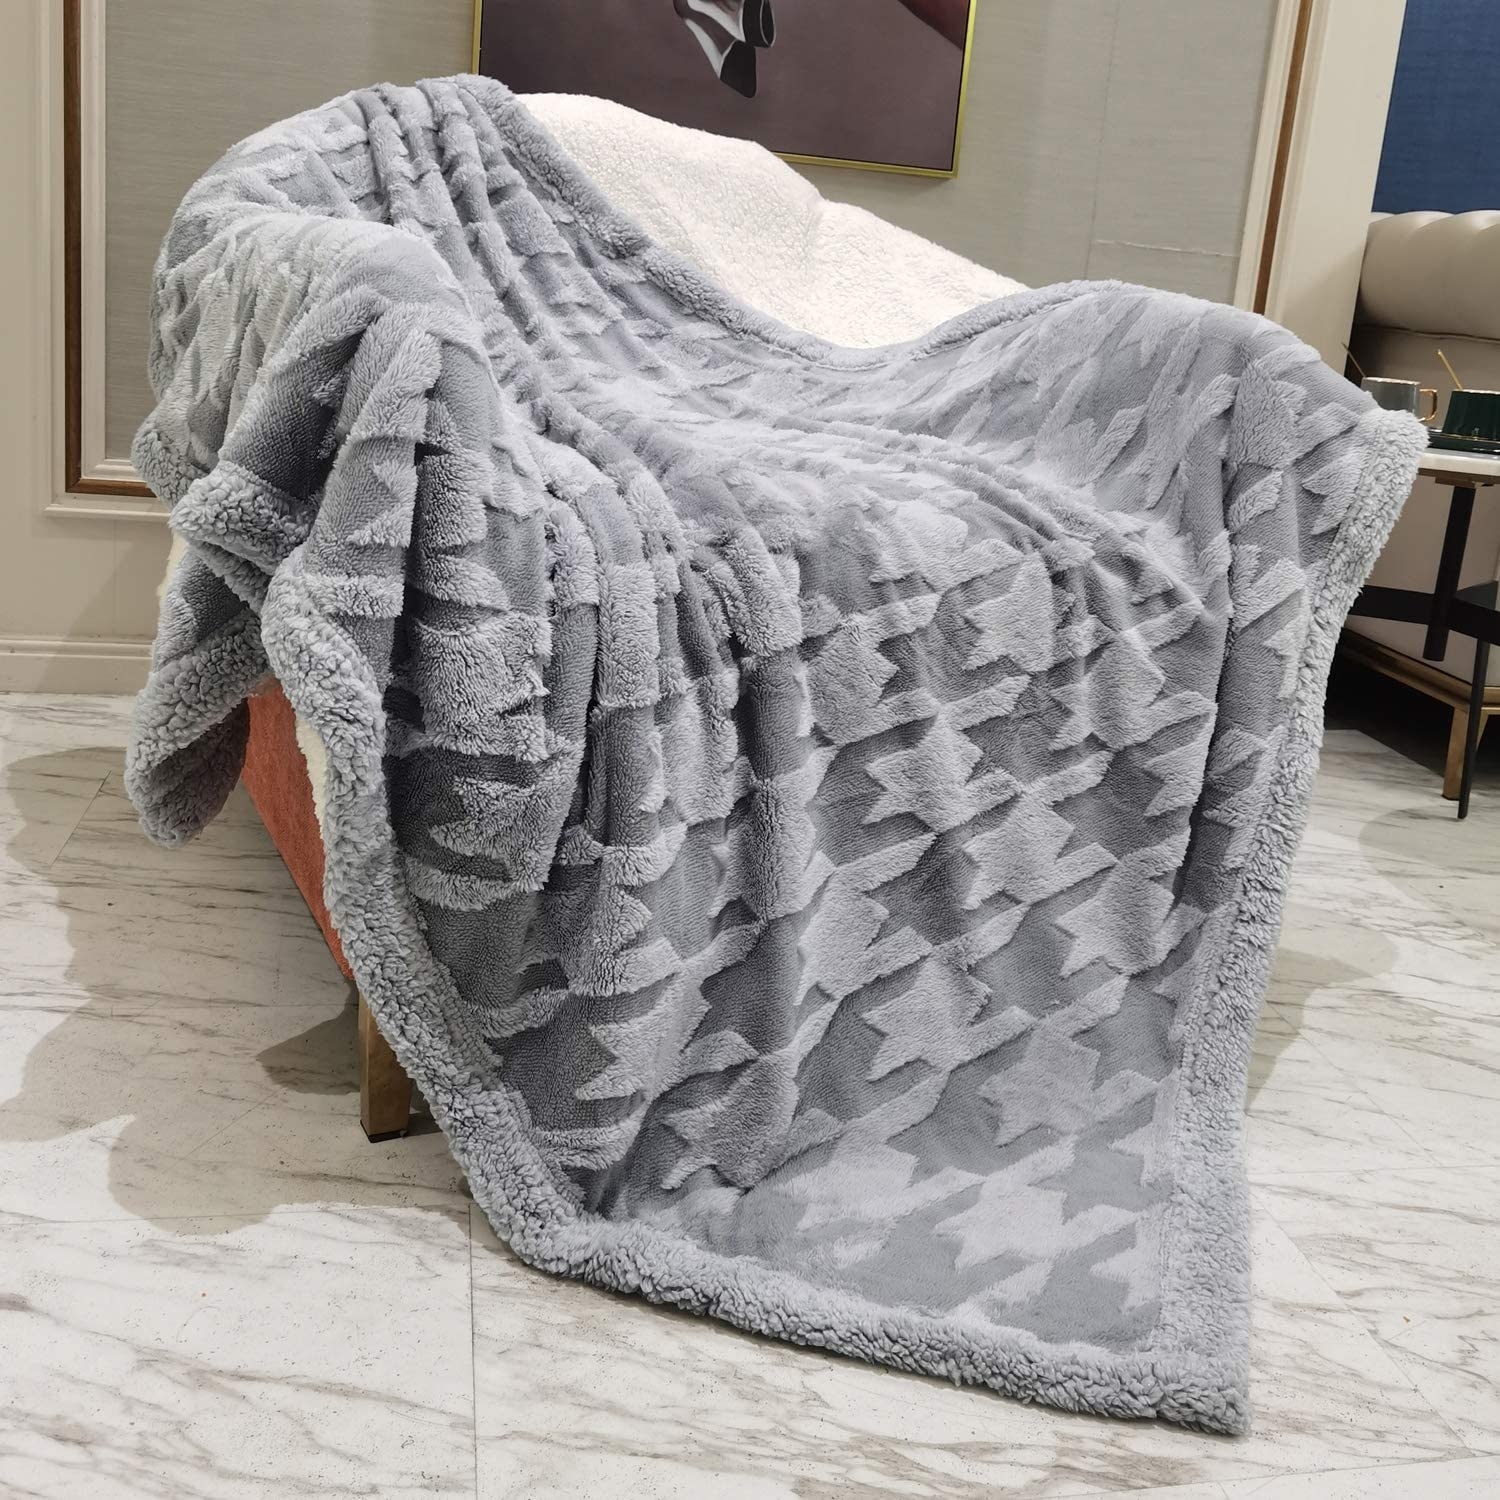 "DISSA Sherpa Fleece Blanket Throw Blanket Soft Blanket Plush Fluffy Blanket Warm Cozy Dual Sided Throw Blanket Perfect Throw for All Seasons for Couch Bed Sofa (Light Grey, 51""x63""): Home & Kitchen"